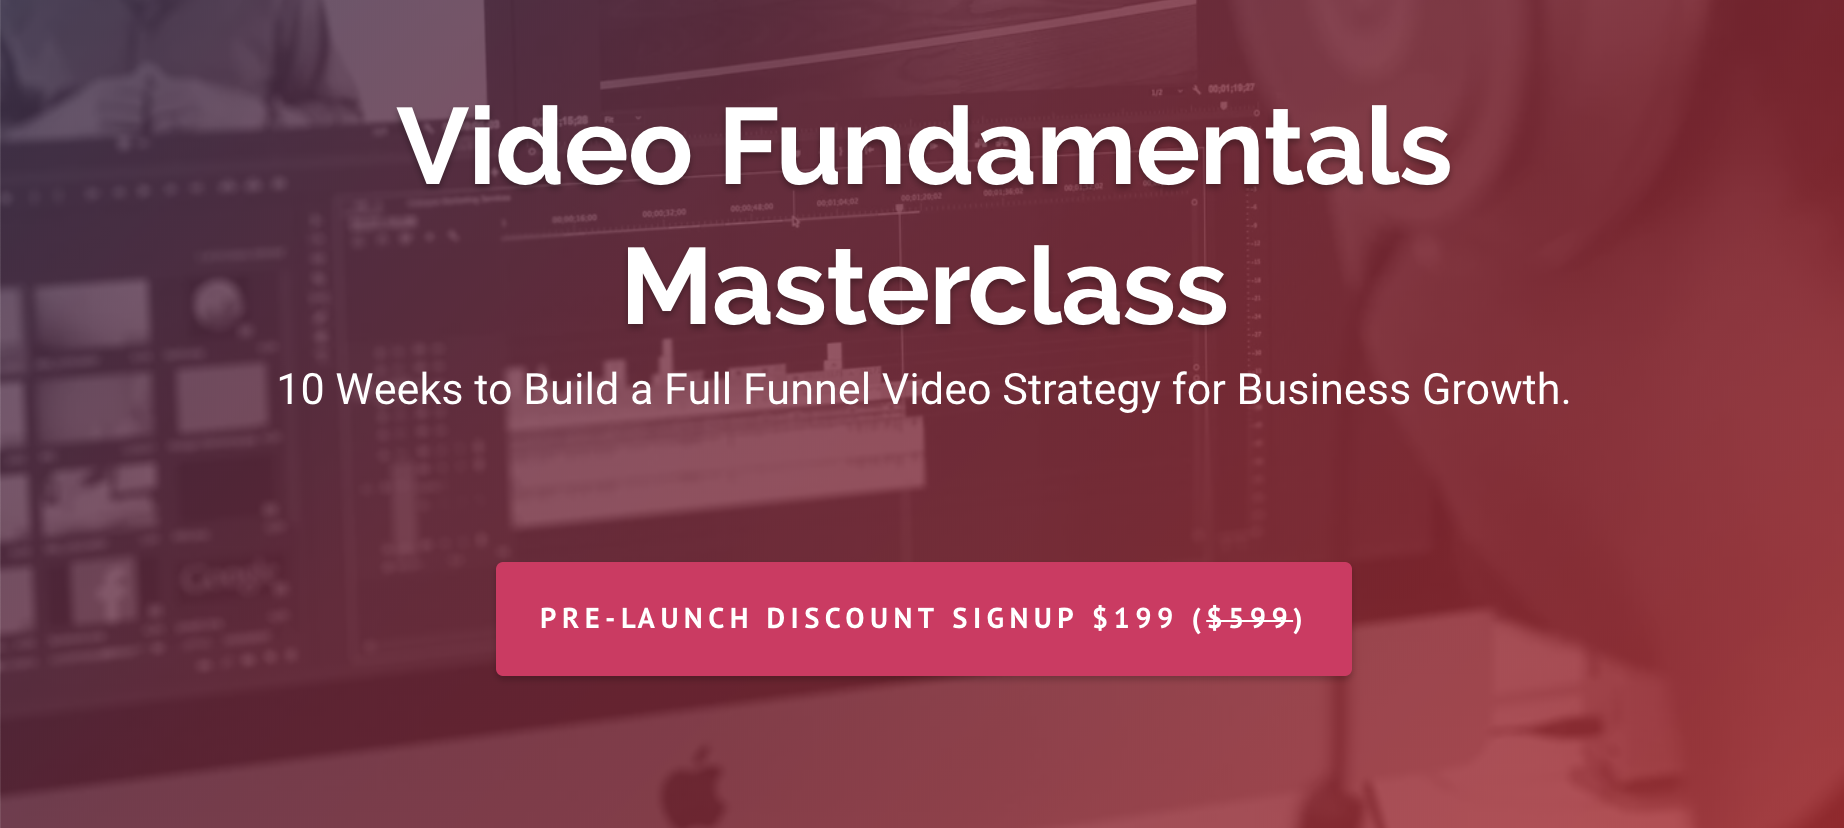 Video Fundamentals Masterclass